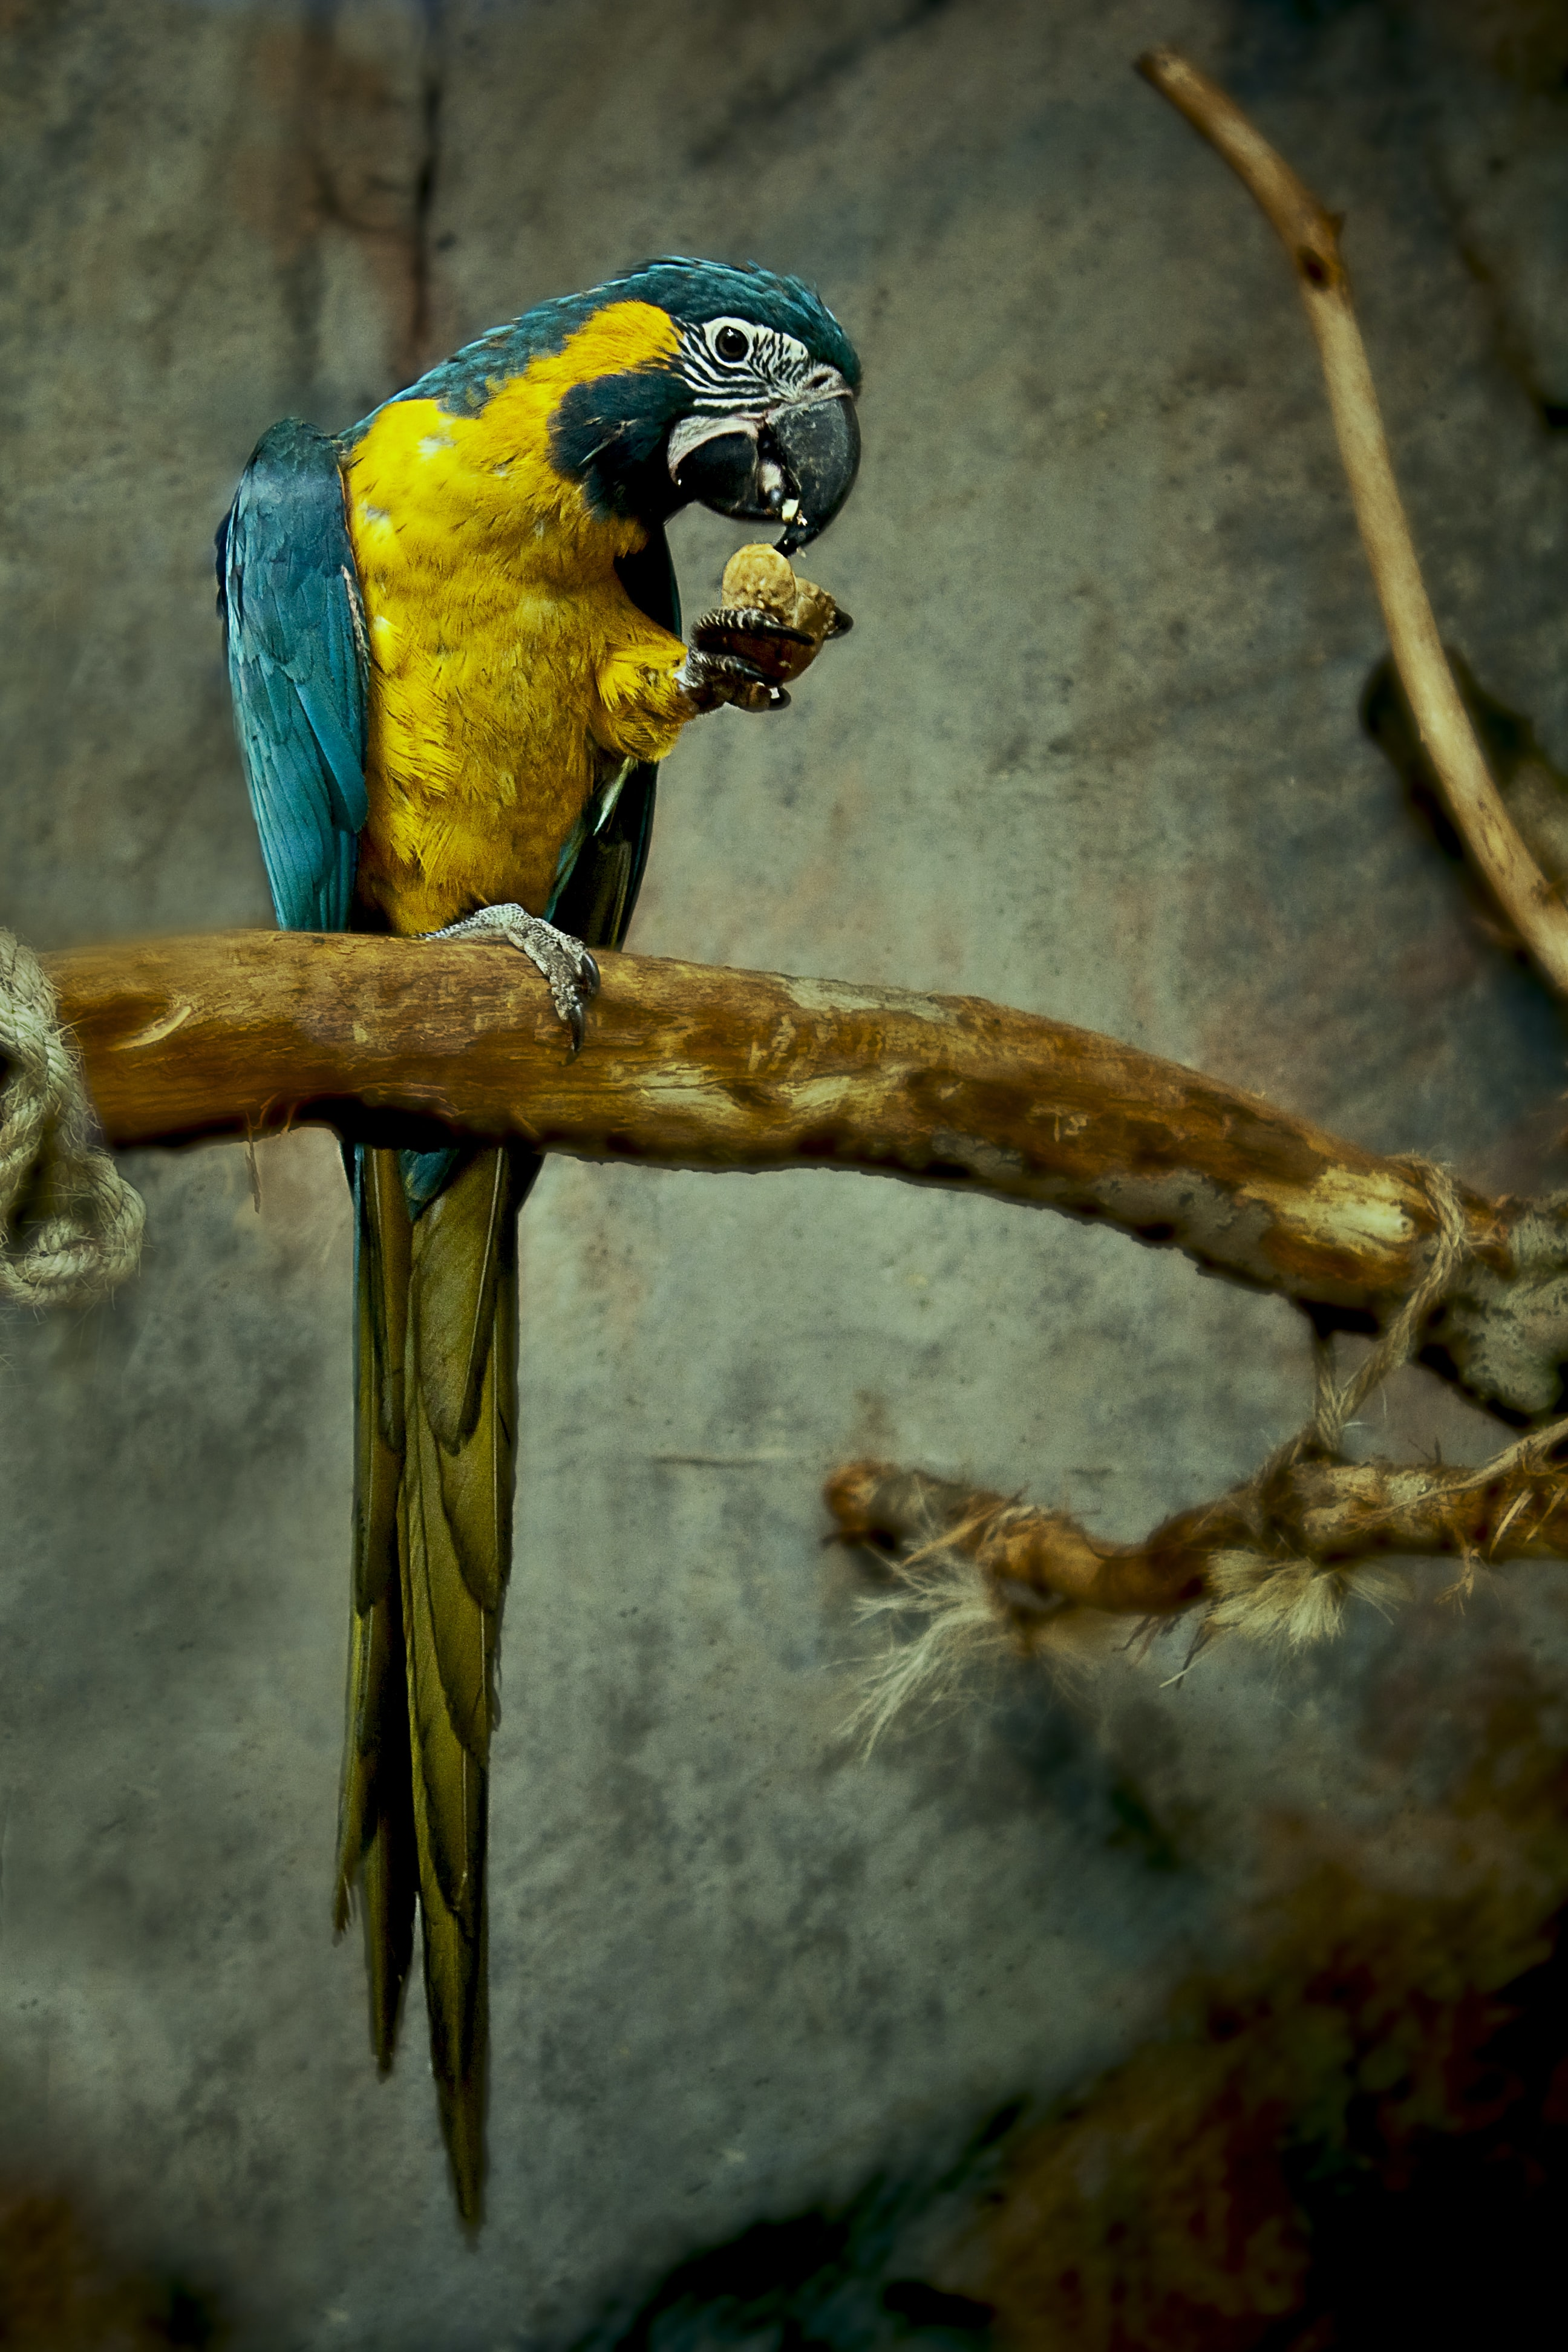 Blue and yellow parrot eating from its hand while perched on a branch tied by rope